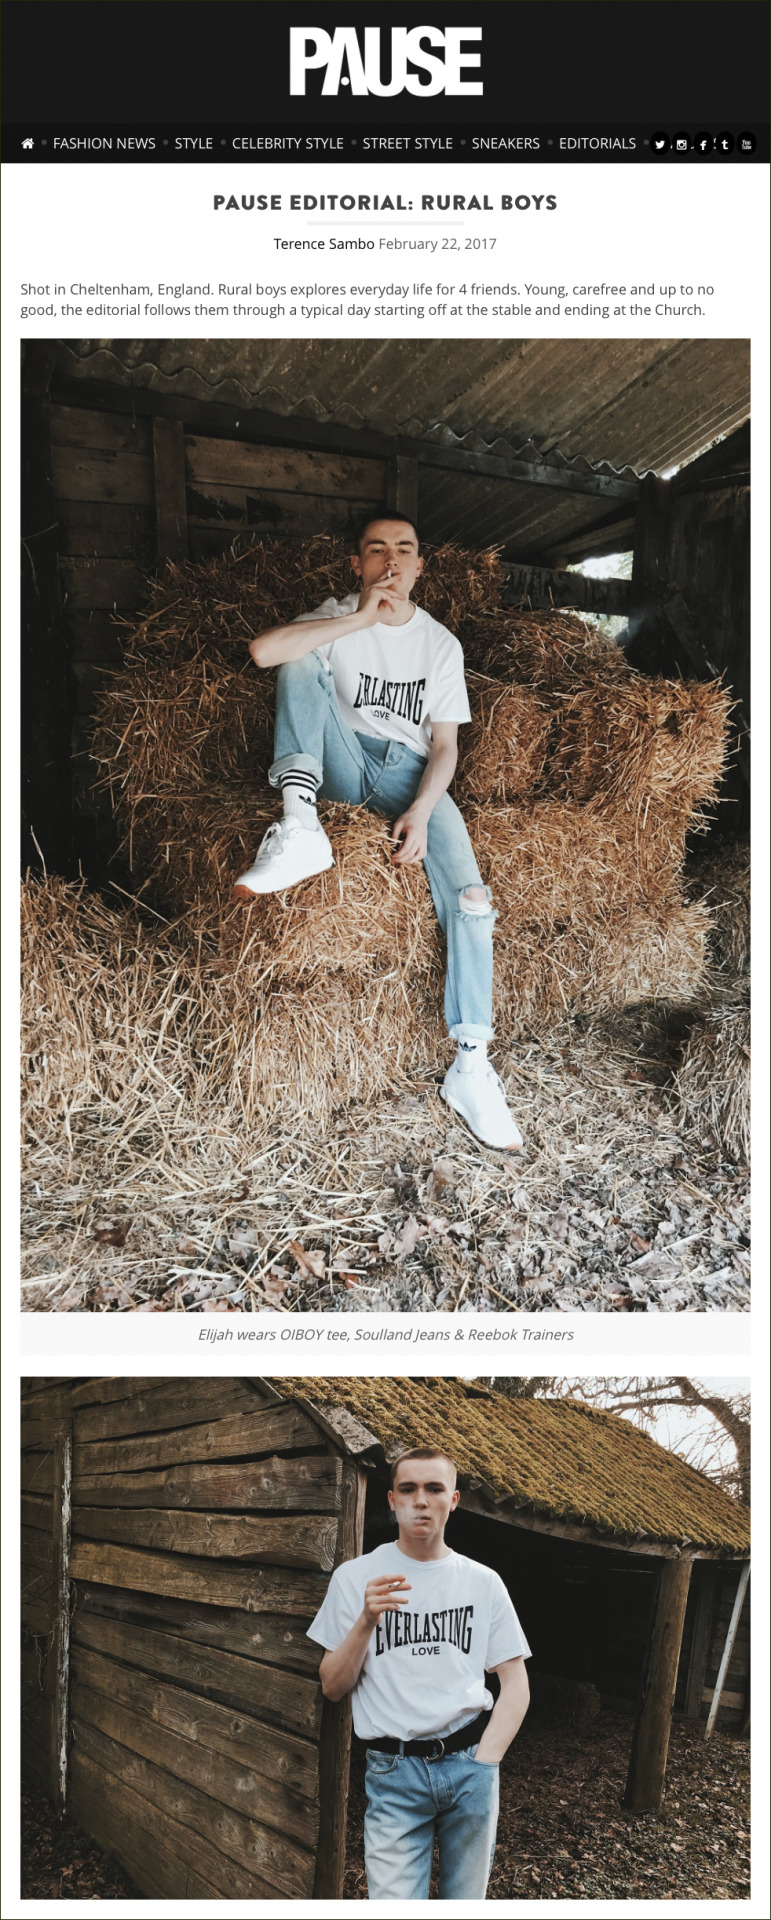 PAUSE Magazine  shoot for an online editorial called ' Rural Boys ', featuring the OIBOY  Everlasting Love  t-shirt.  Creative Direction, Styling & Photography:  Terence Sambo  Fashion Assistant:  Daniel Foreshaw  Grooming & Hair:  Lash Vanegro  Model:  Elija Horne